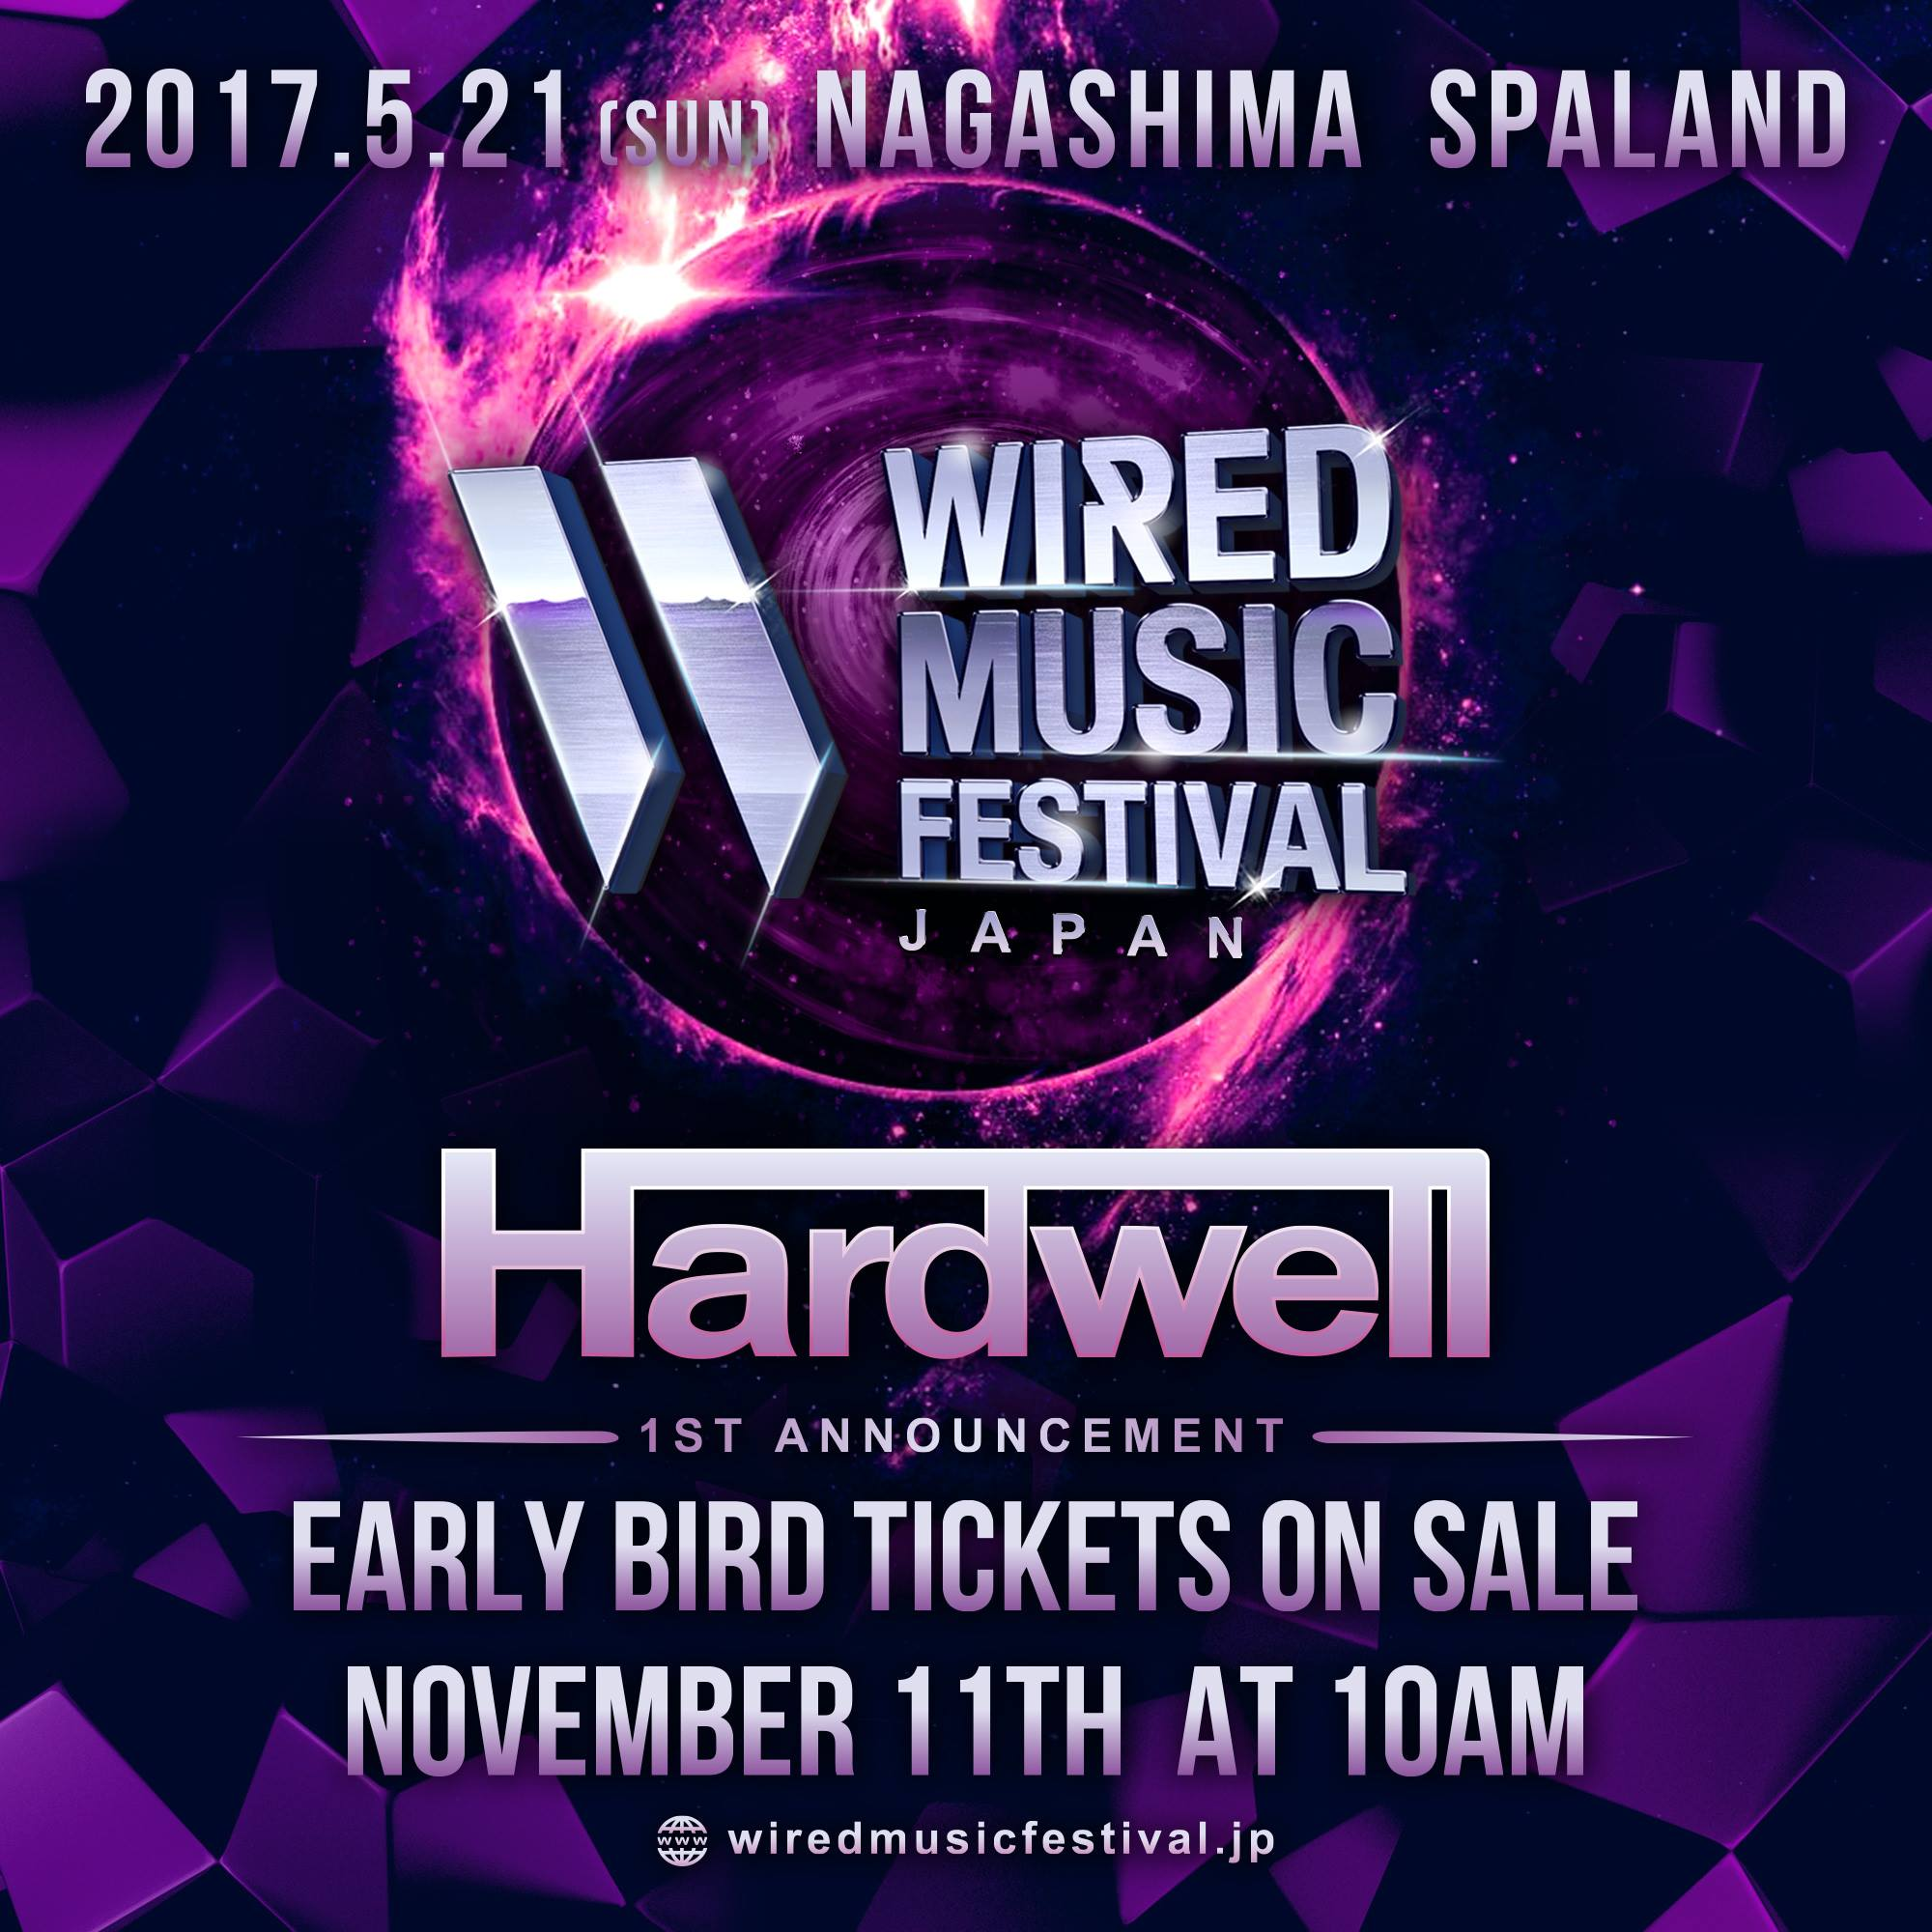 wired-music-festival17-early-bard